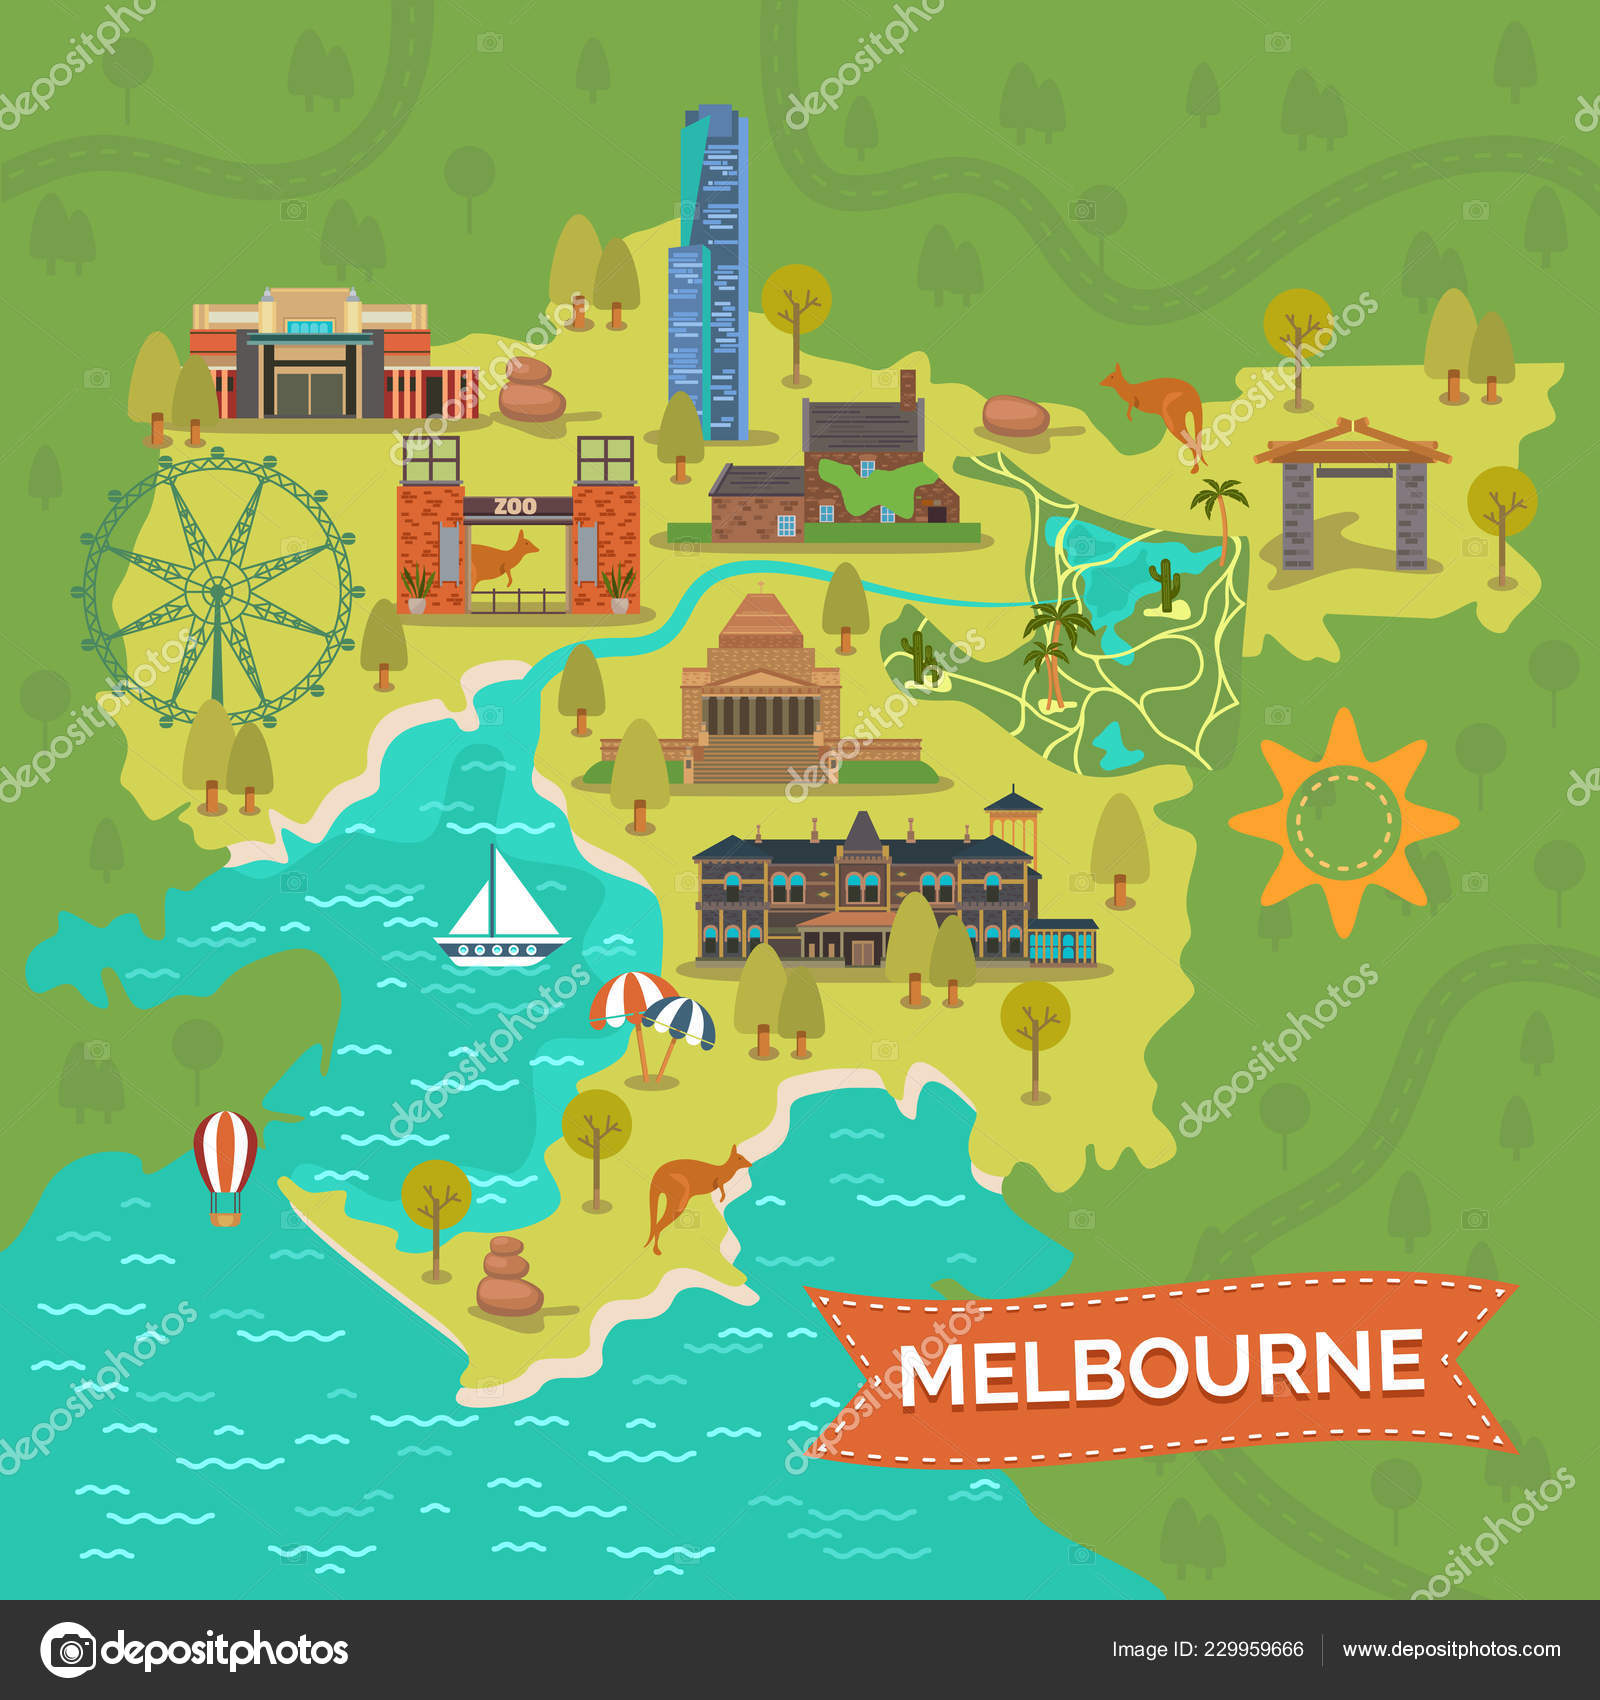 Map Of Australia With Landmarks.Melbourne Australia Map With Landmarks Sightseeing Stock Vector